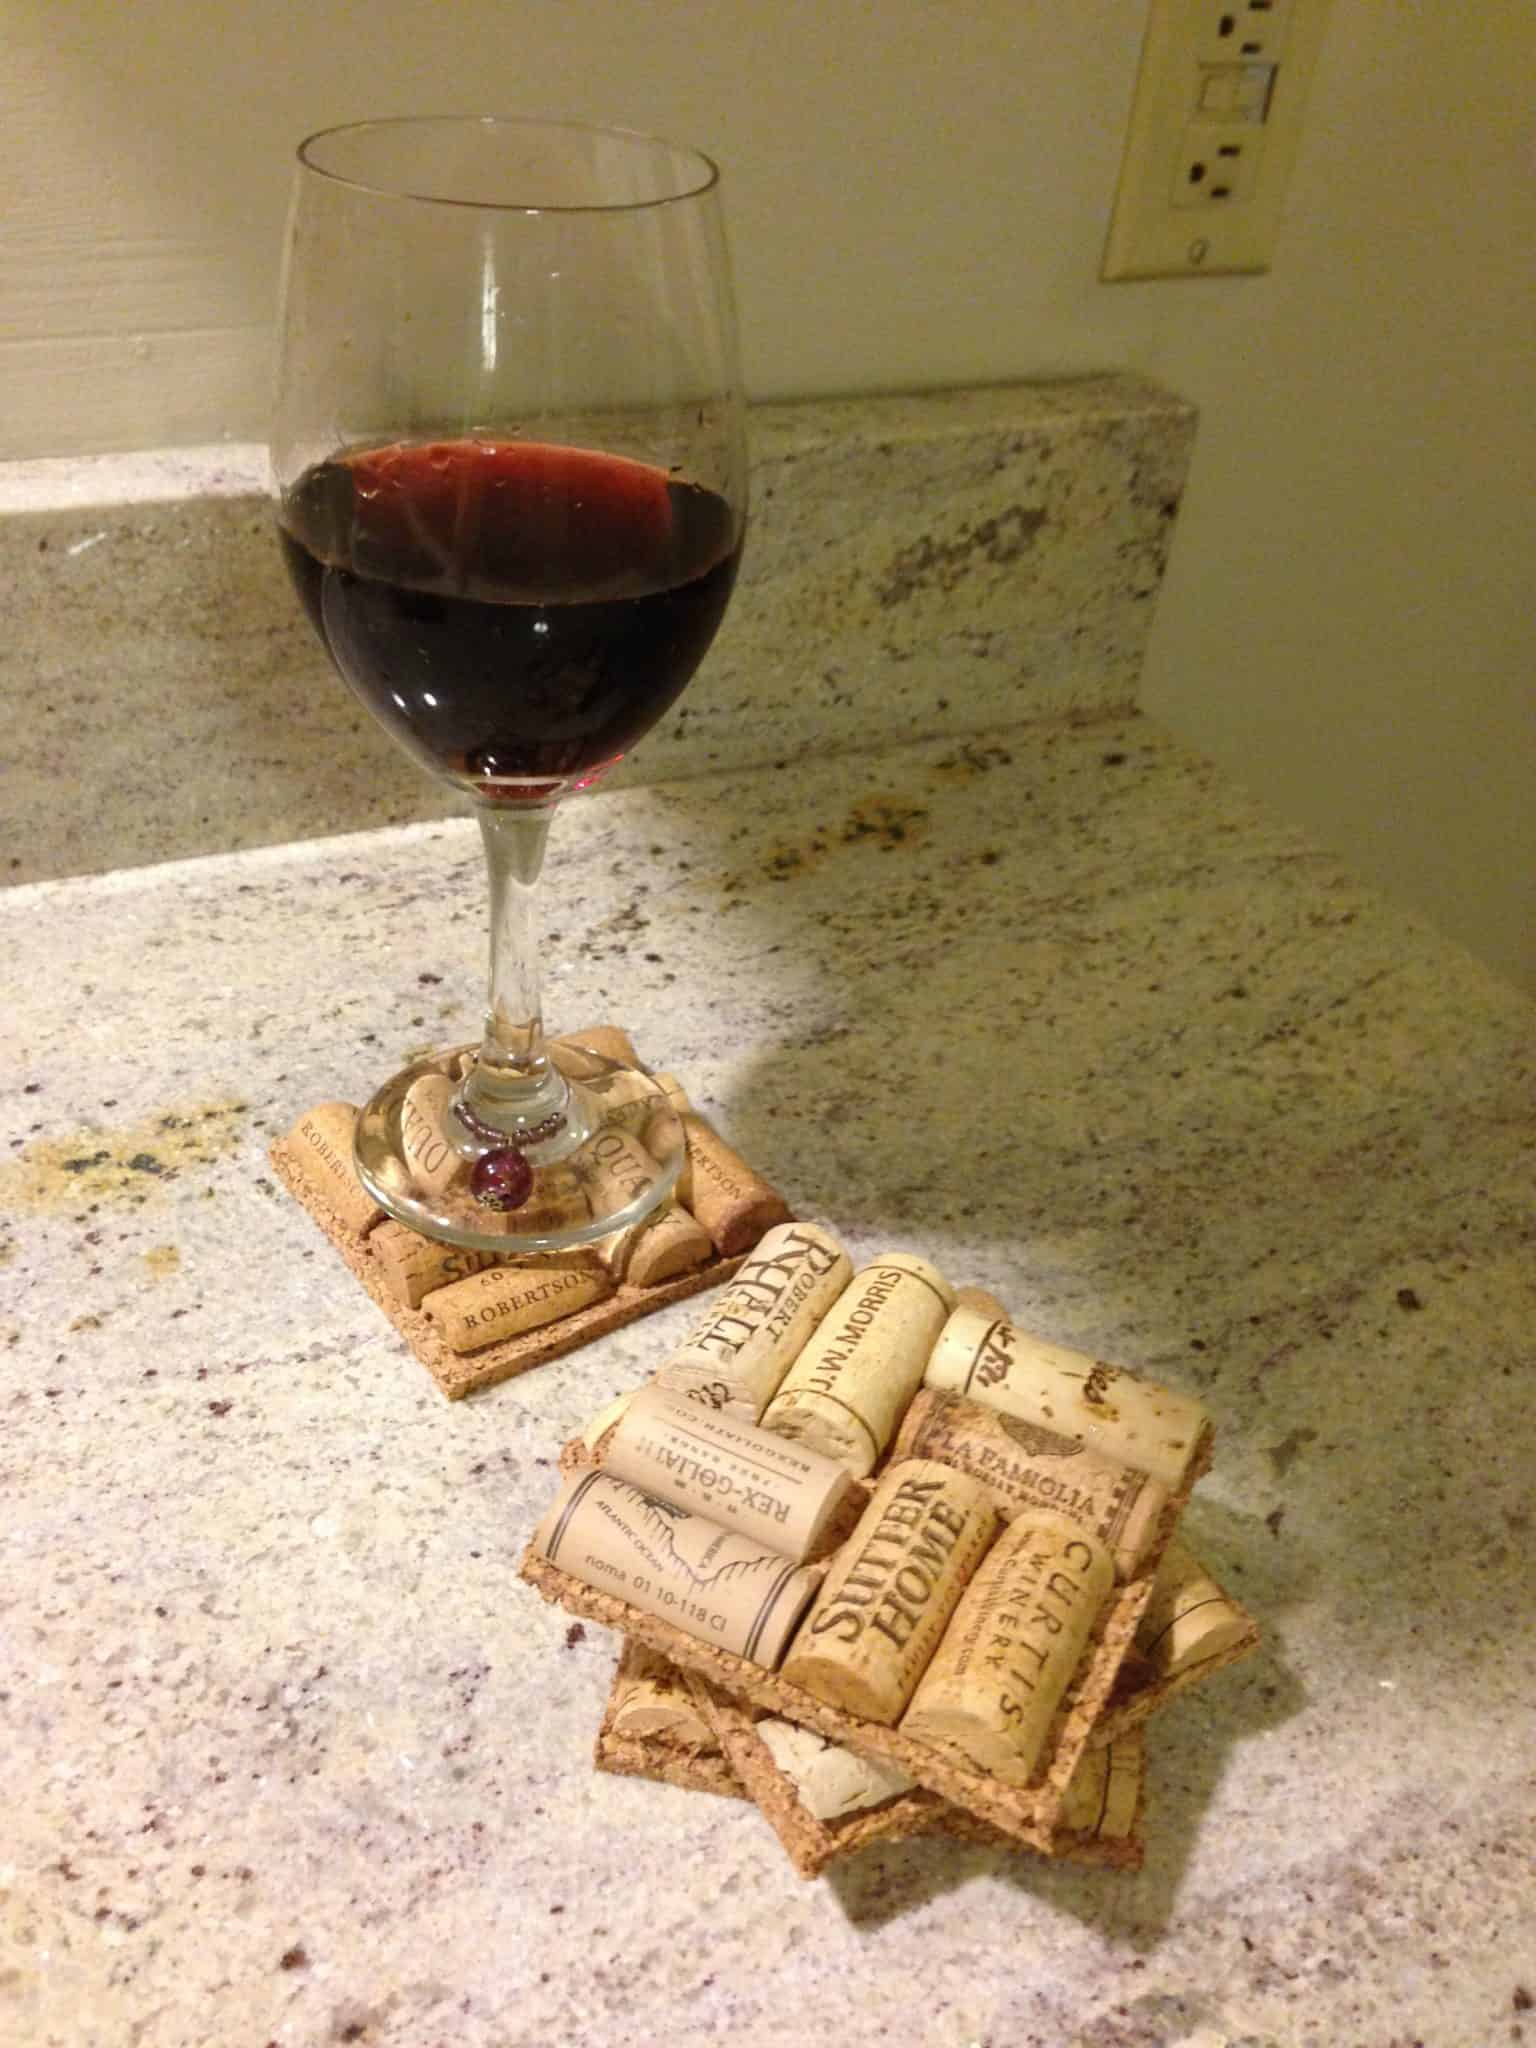 homemade mothers day gifts idea - DIY Wine Cork Coasters Craft